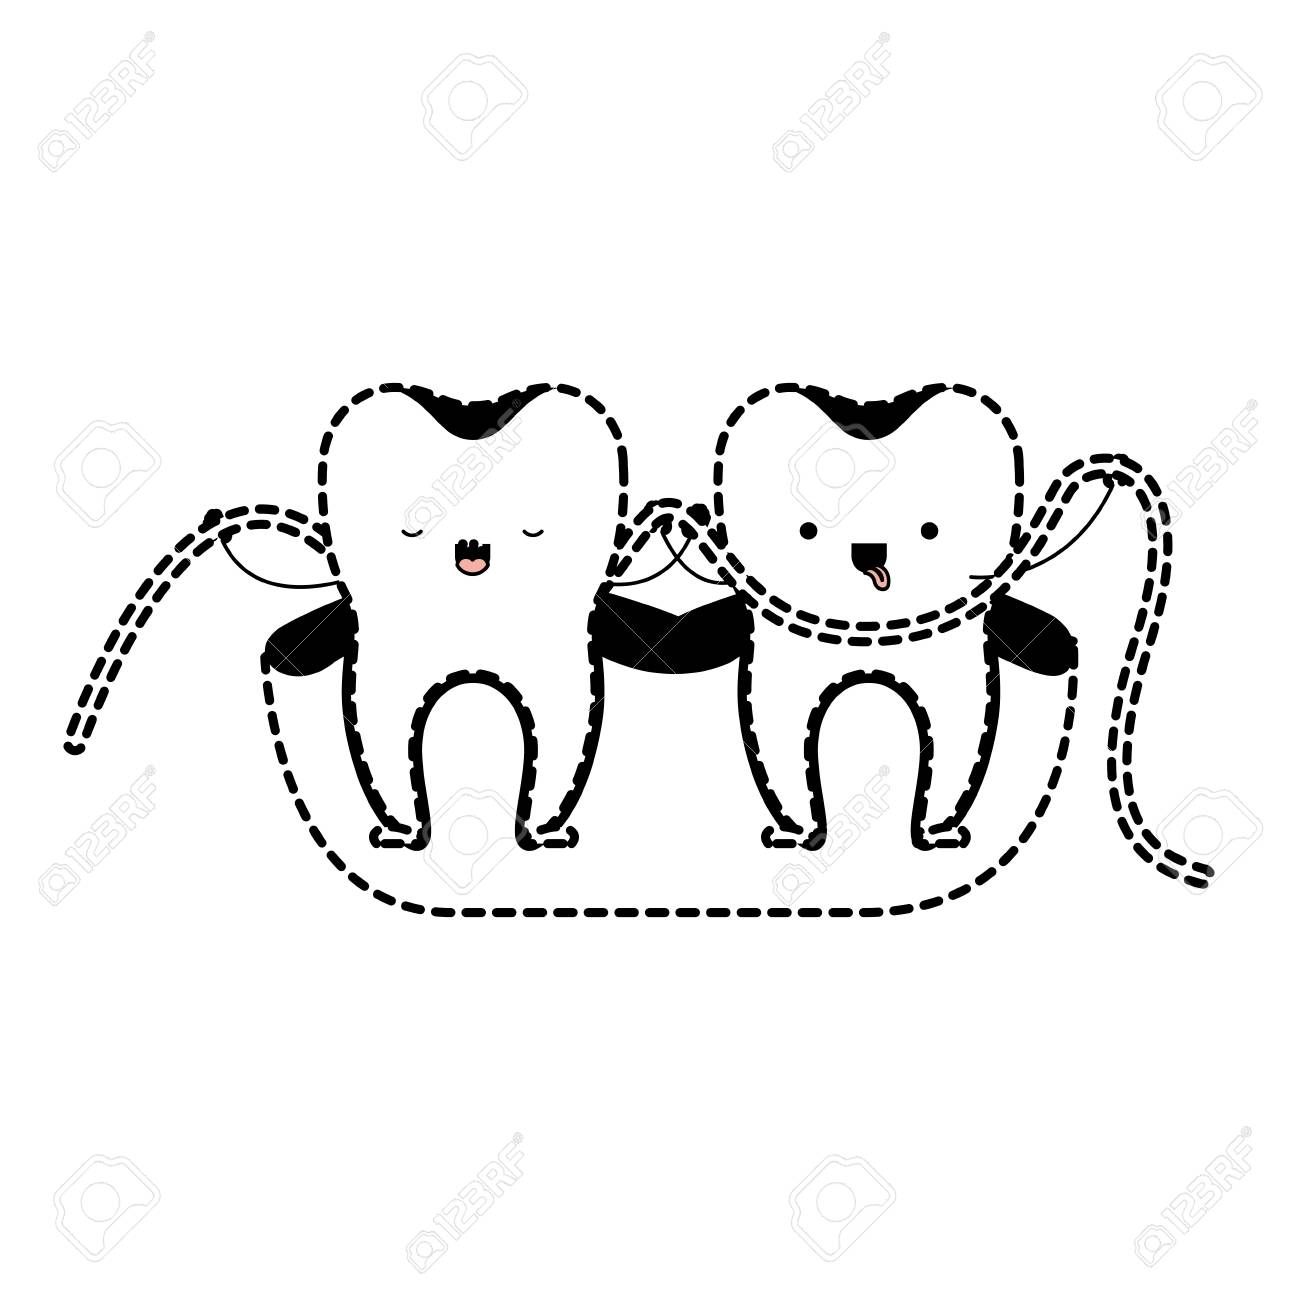 Teeth Cartoon And Dental Floss Between Them Holding Hands In Black Dotted Silhouette Vector Illustration